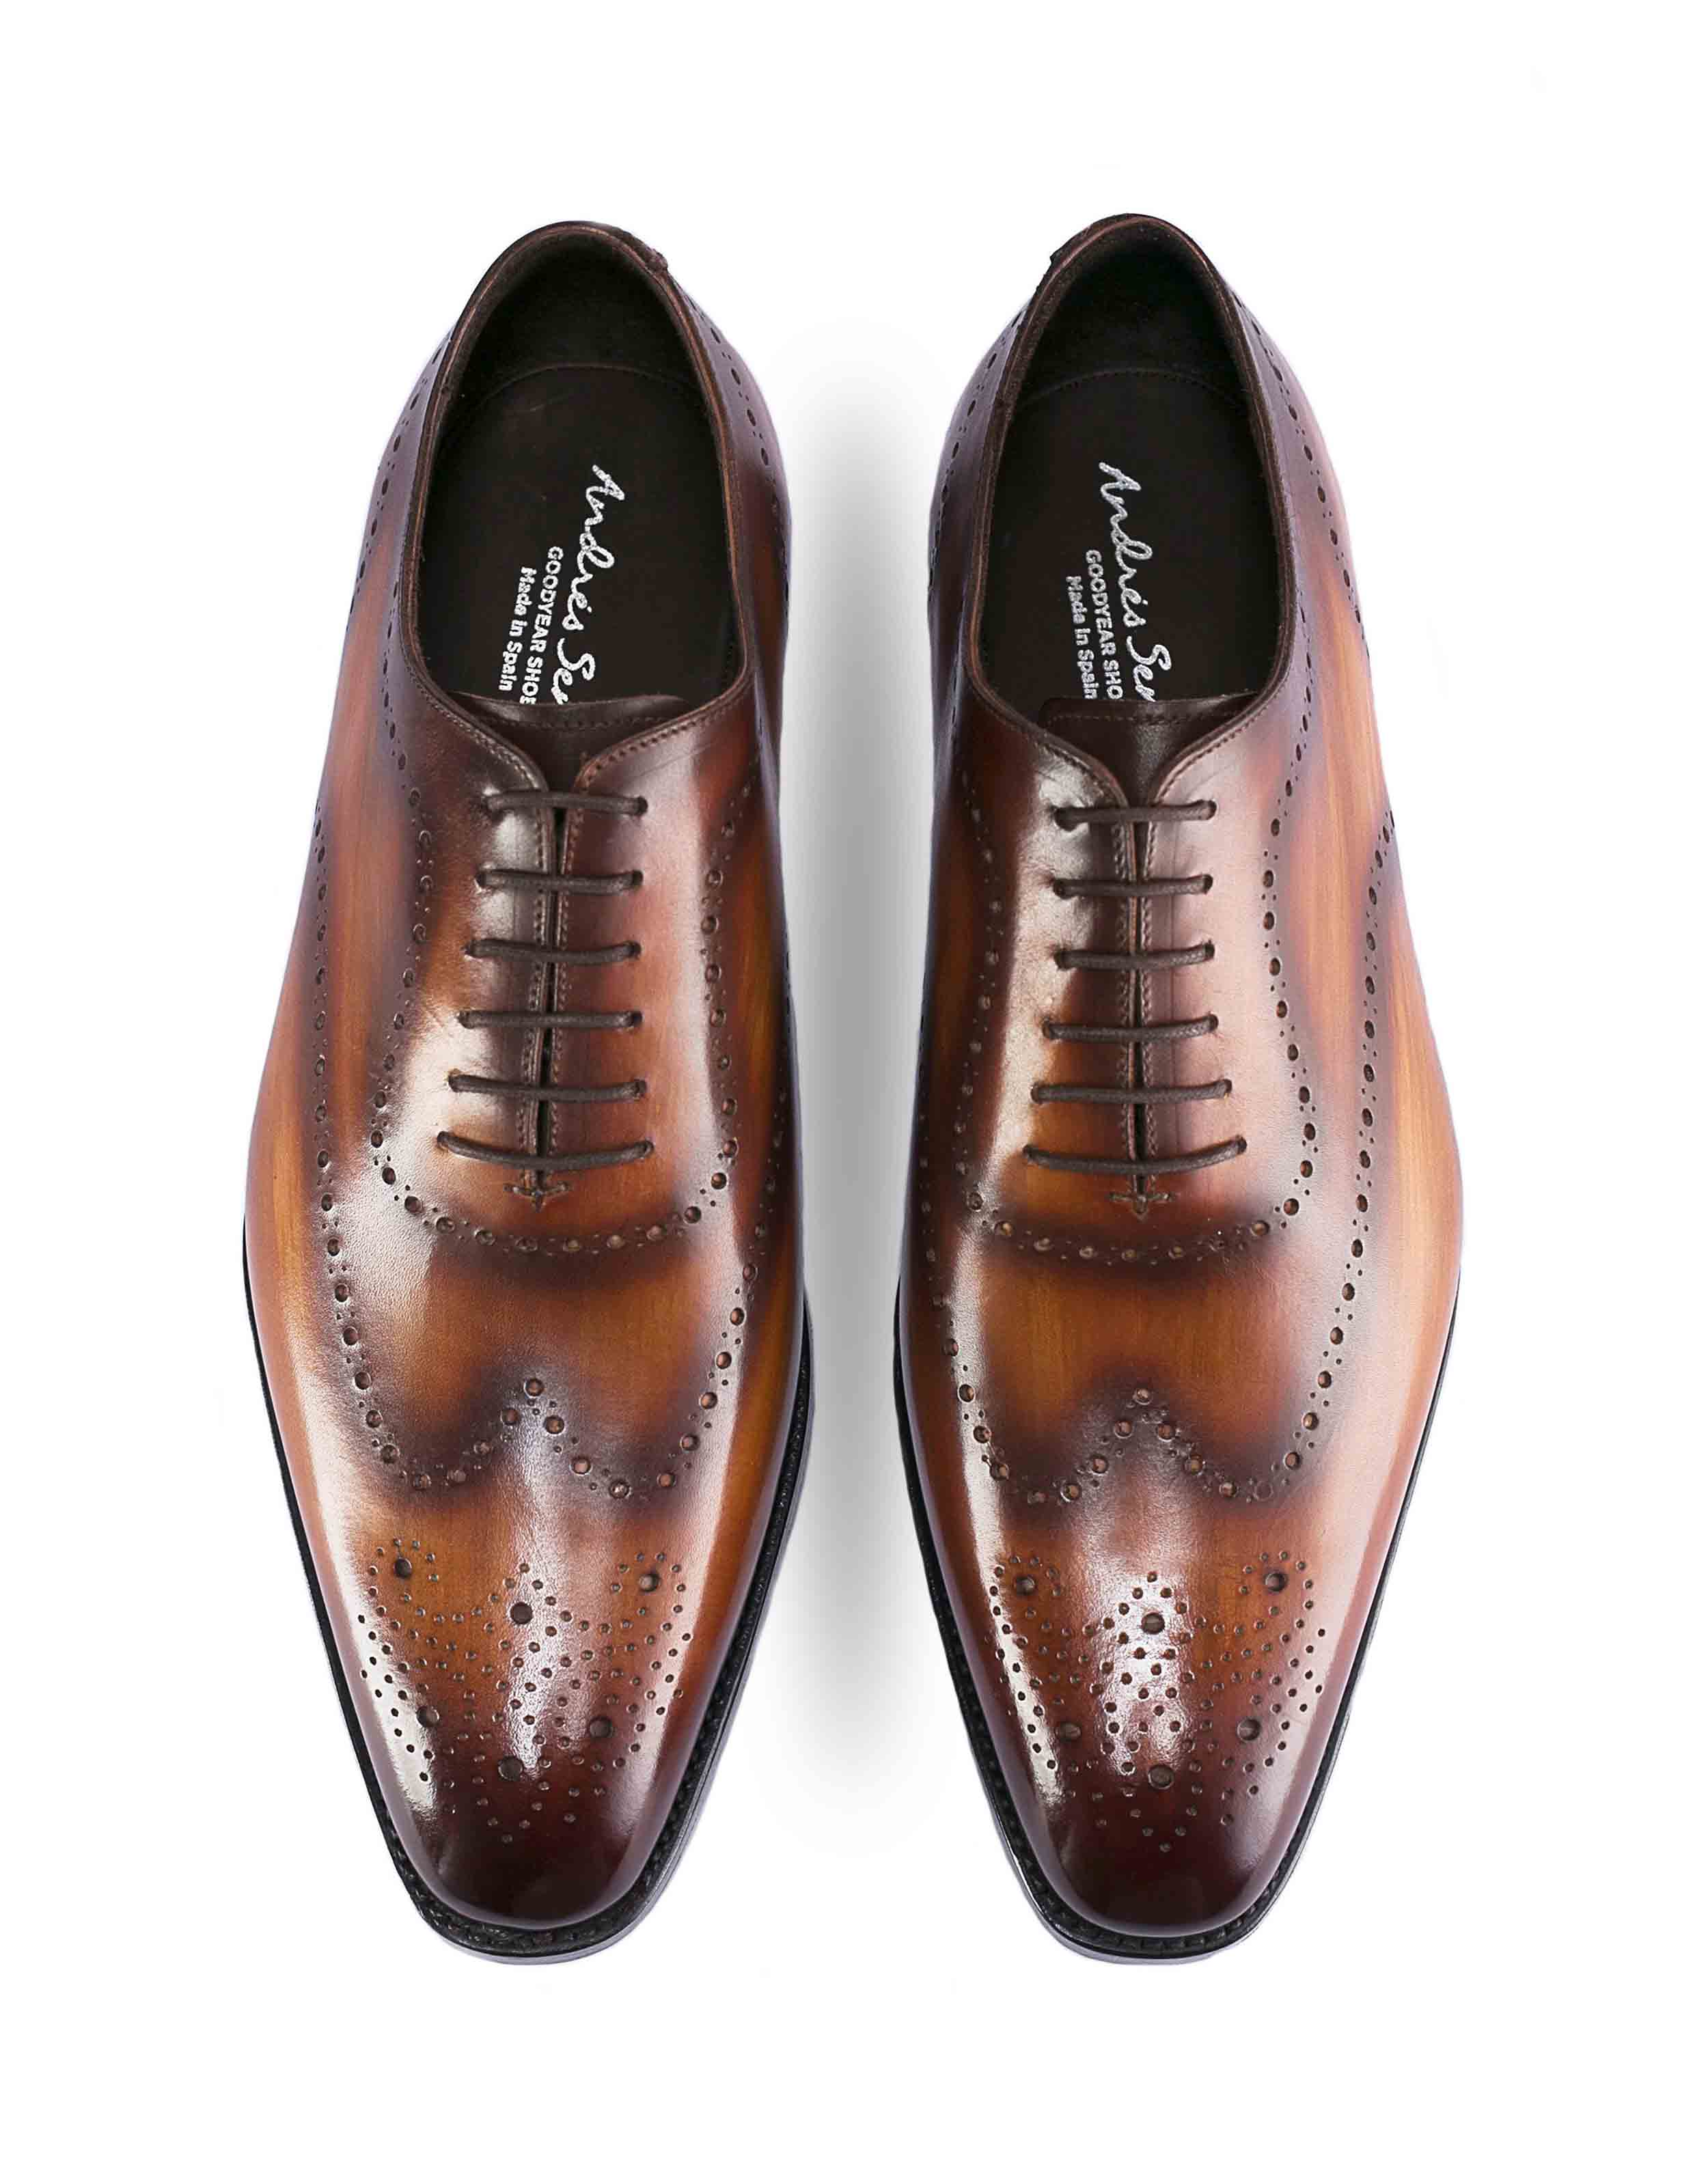 DARK BROWN PATINA BROGUE OXFORD4